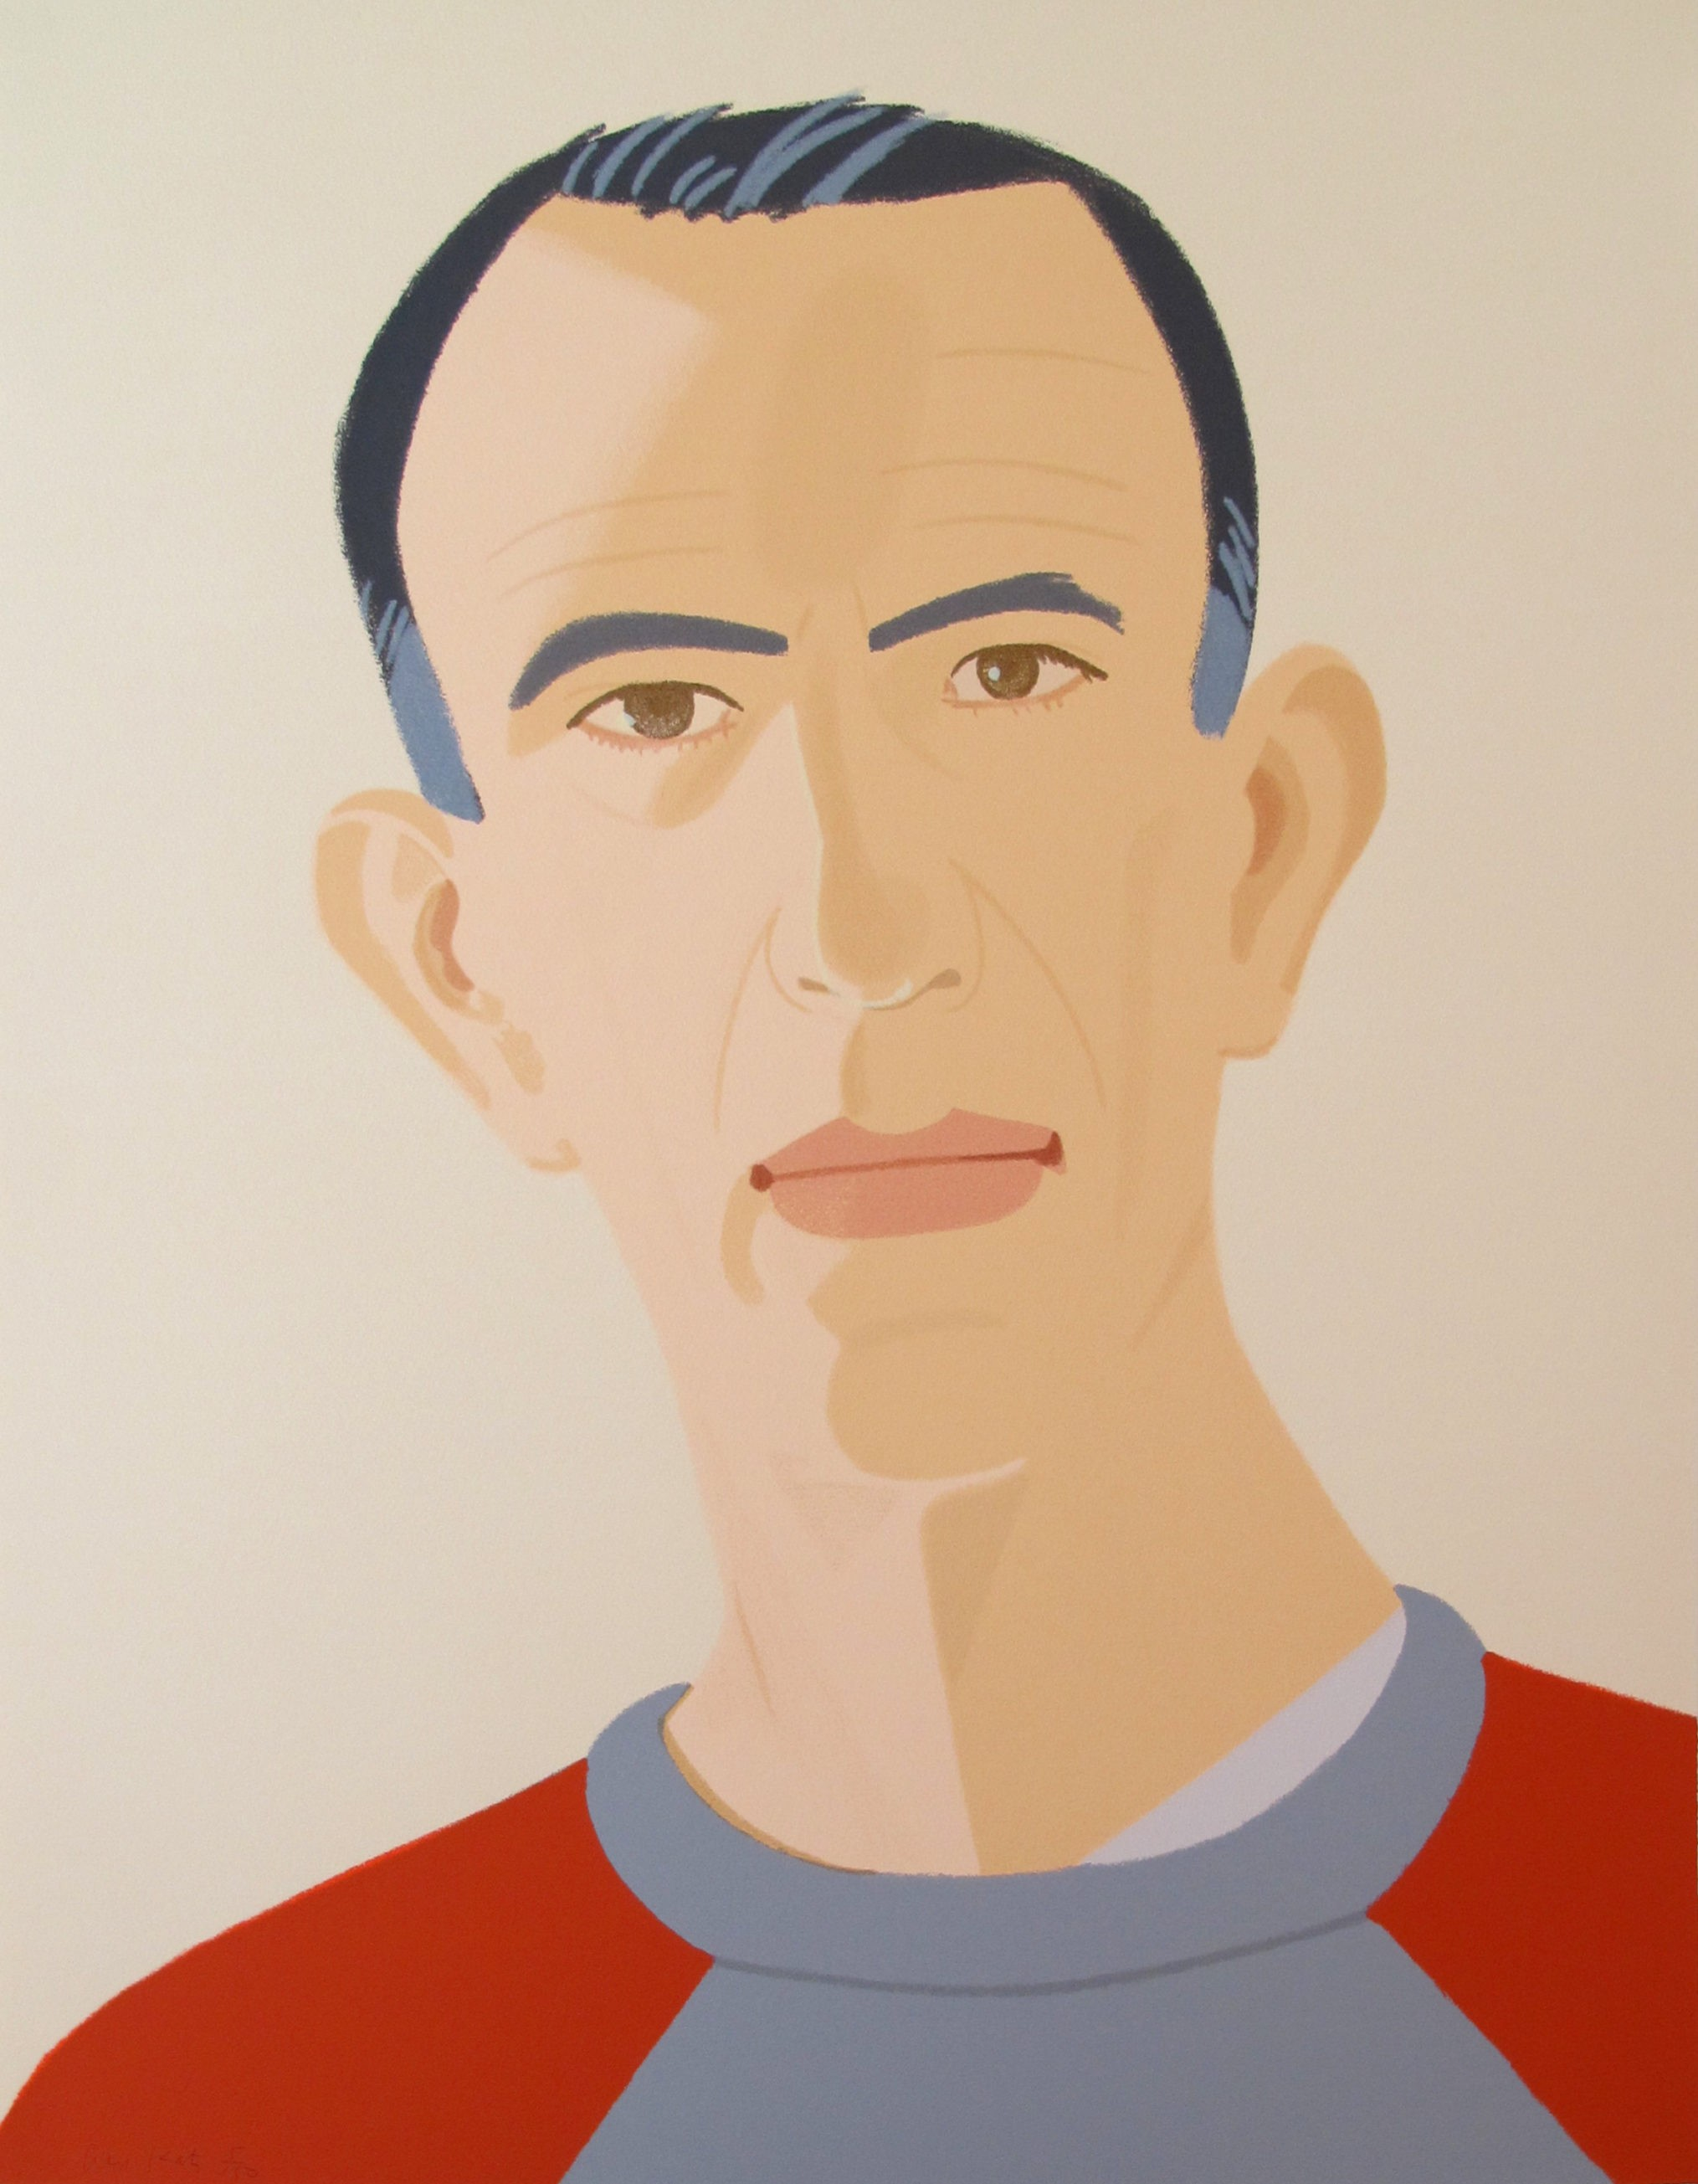 Alex Katz | Sweatshirt II | 1990 | Image of Artists' work.